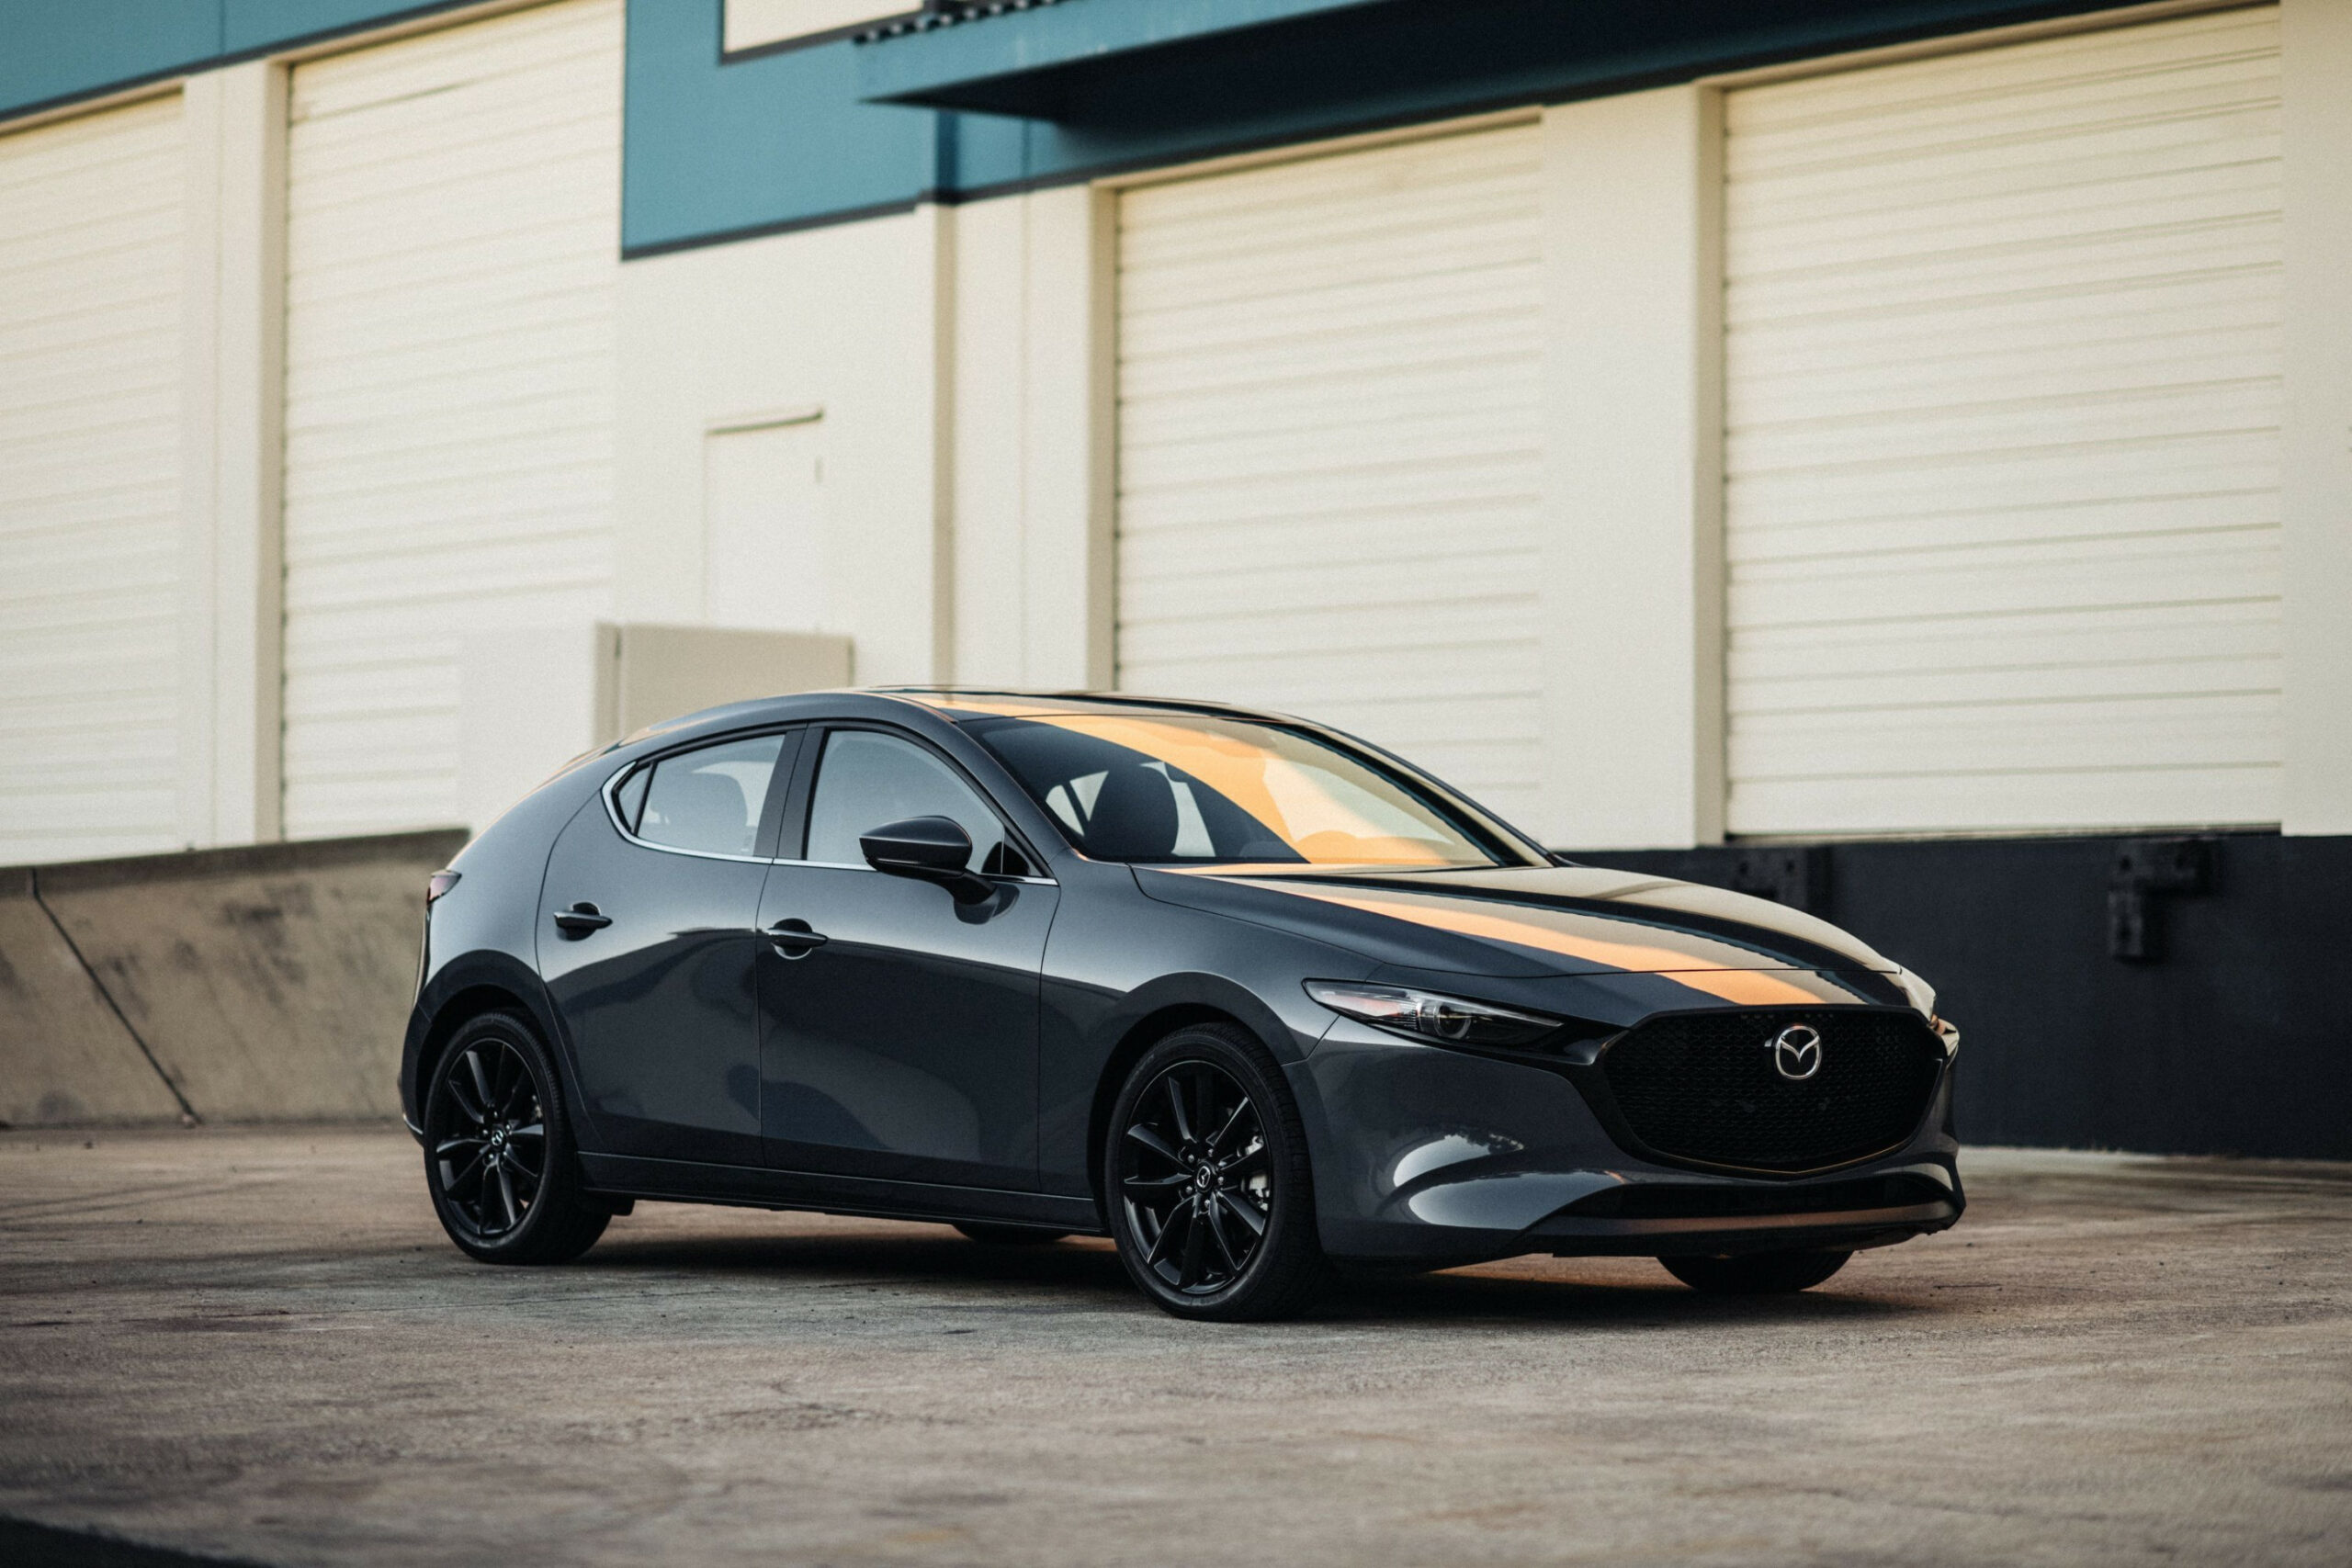 9 Mazda 9 Review, Pricing, and Specs - 2020 mazda grand touring price